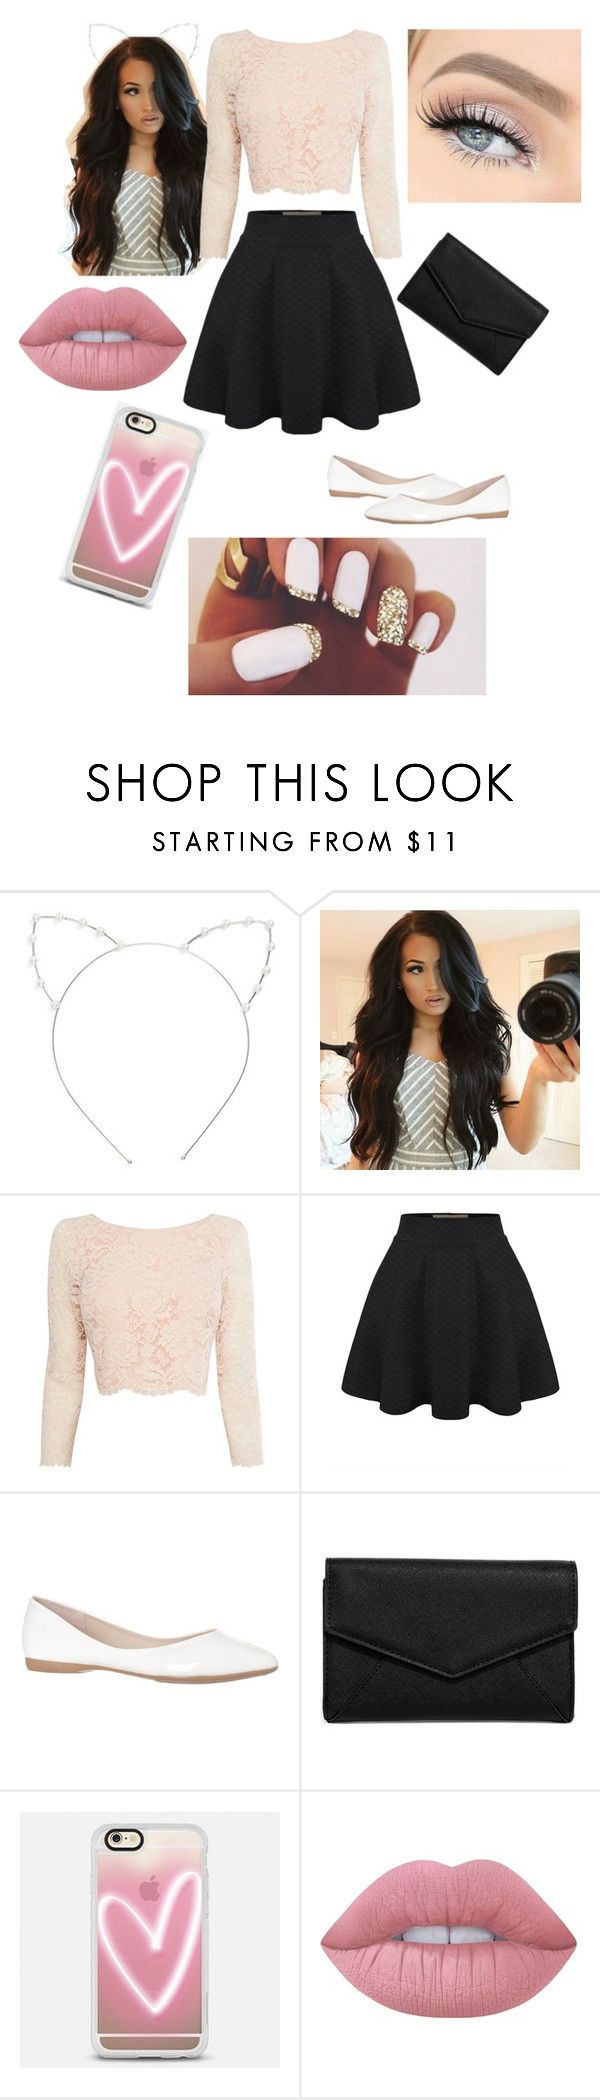 """Ariana Grande concert outfit"" by aileygalbreath ❤ liked on Polyvore featuring Cara, Coast, LULUS, Casetify and Lime Crime"